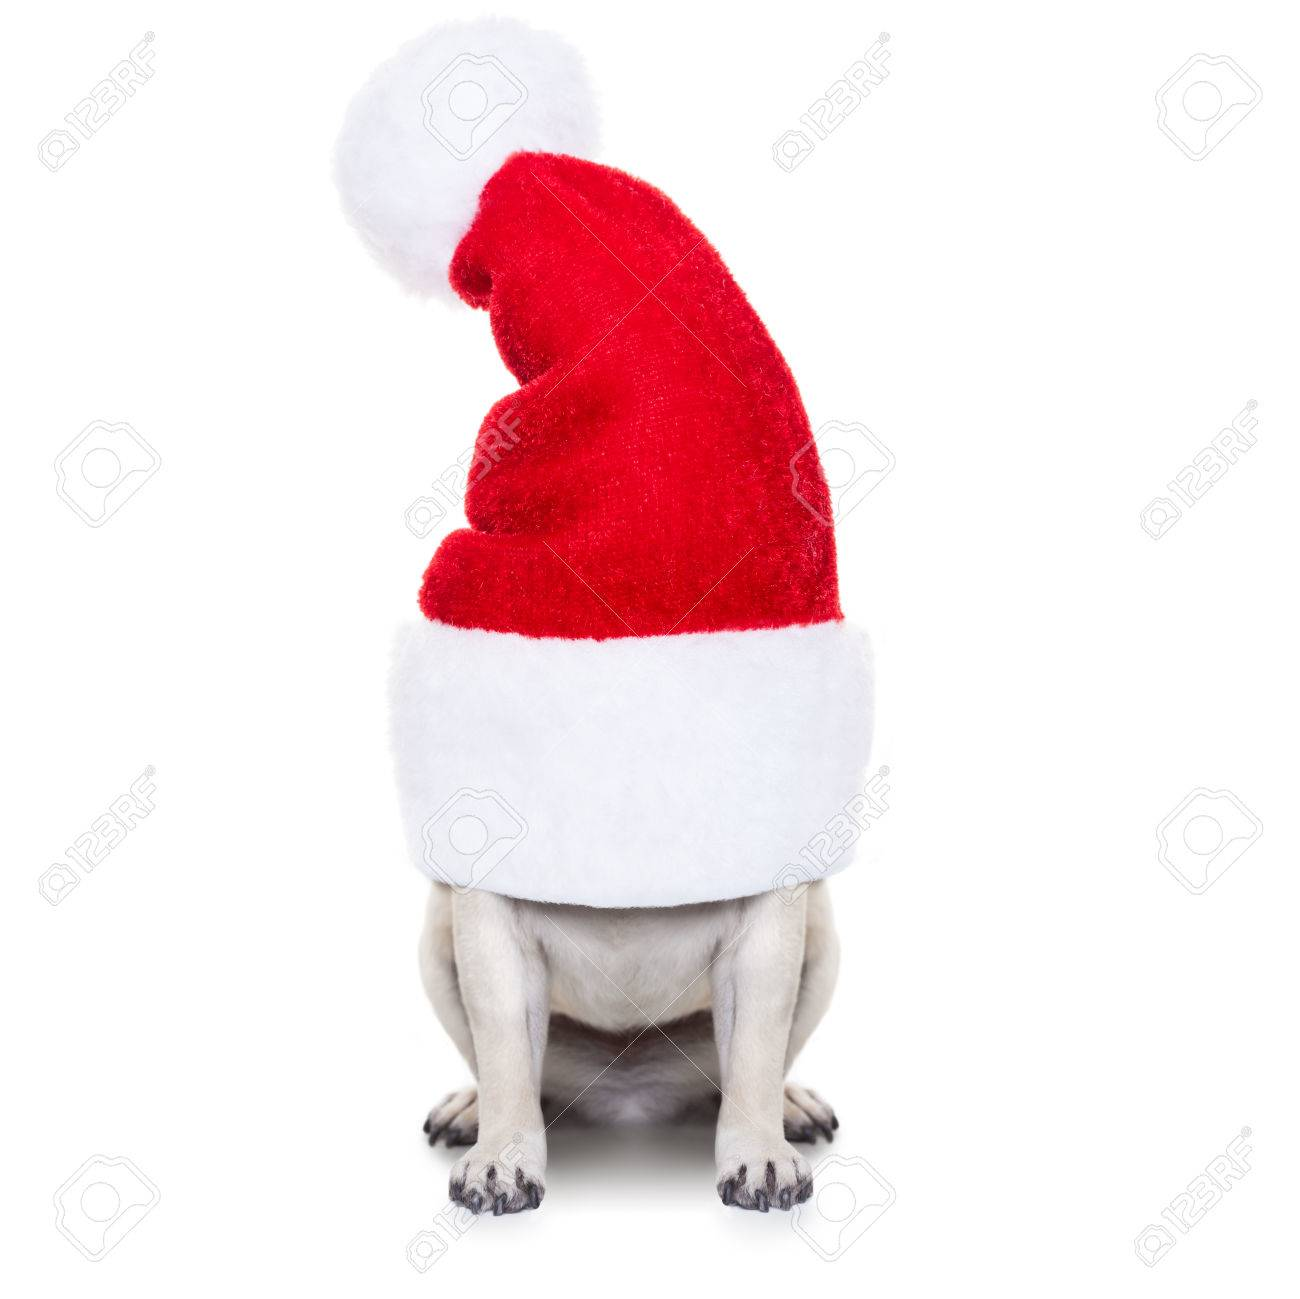 pug dog as santa claus  hiding inside the hat , for christmas holidays, isolated on white background Stock Photo - 46576976